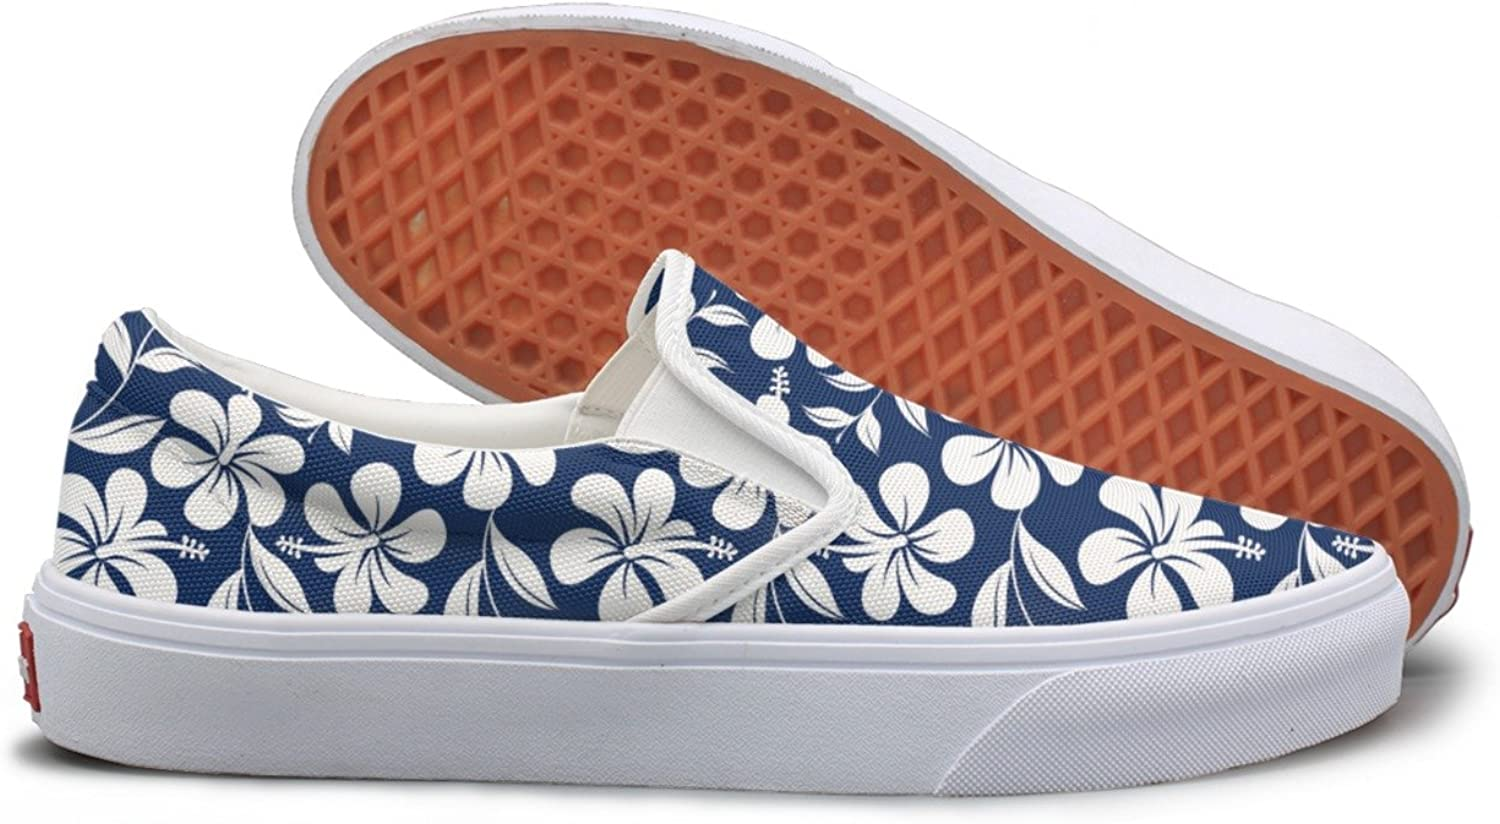 bluee And White Tropical Hibiscus Flowers Sneaker For Women